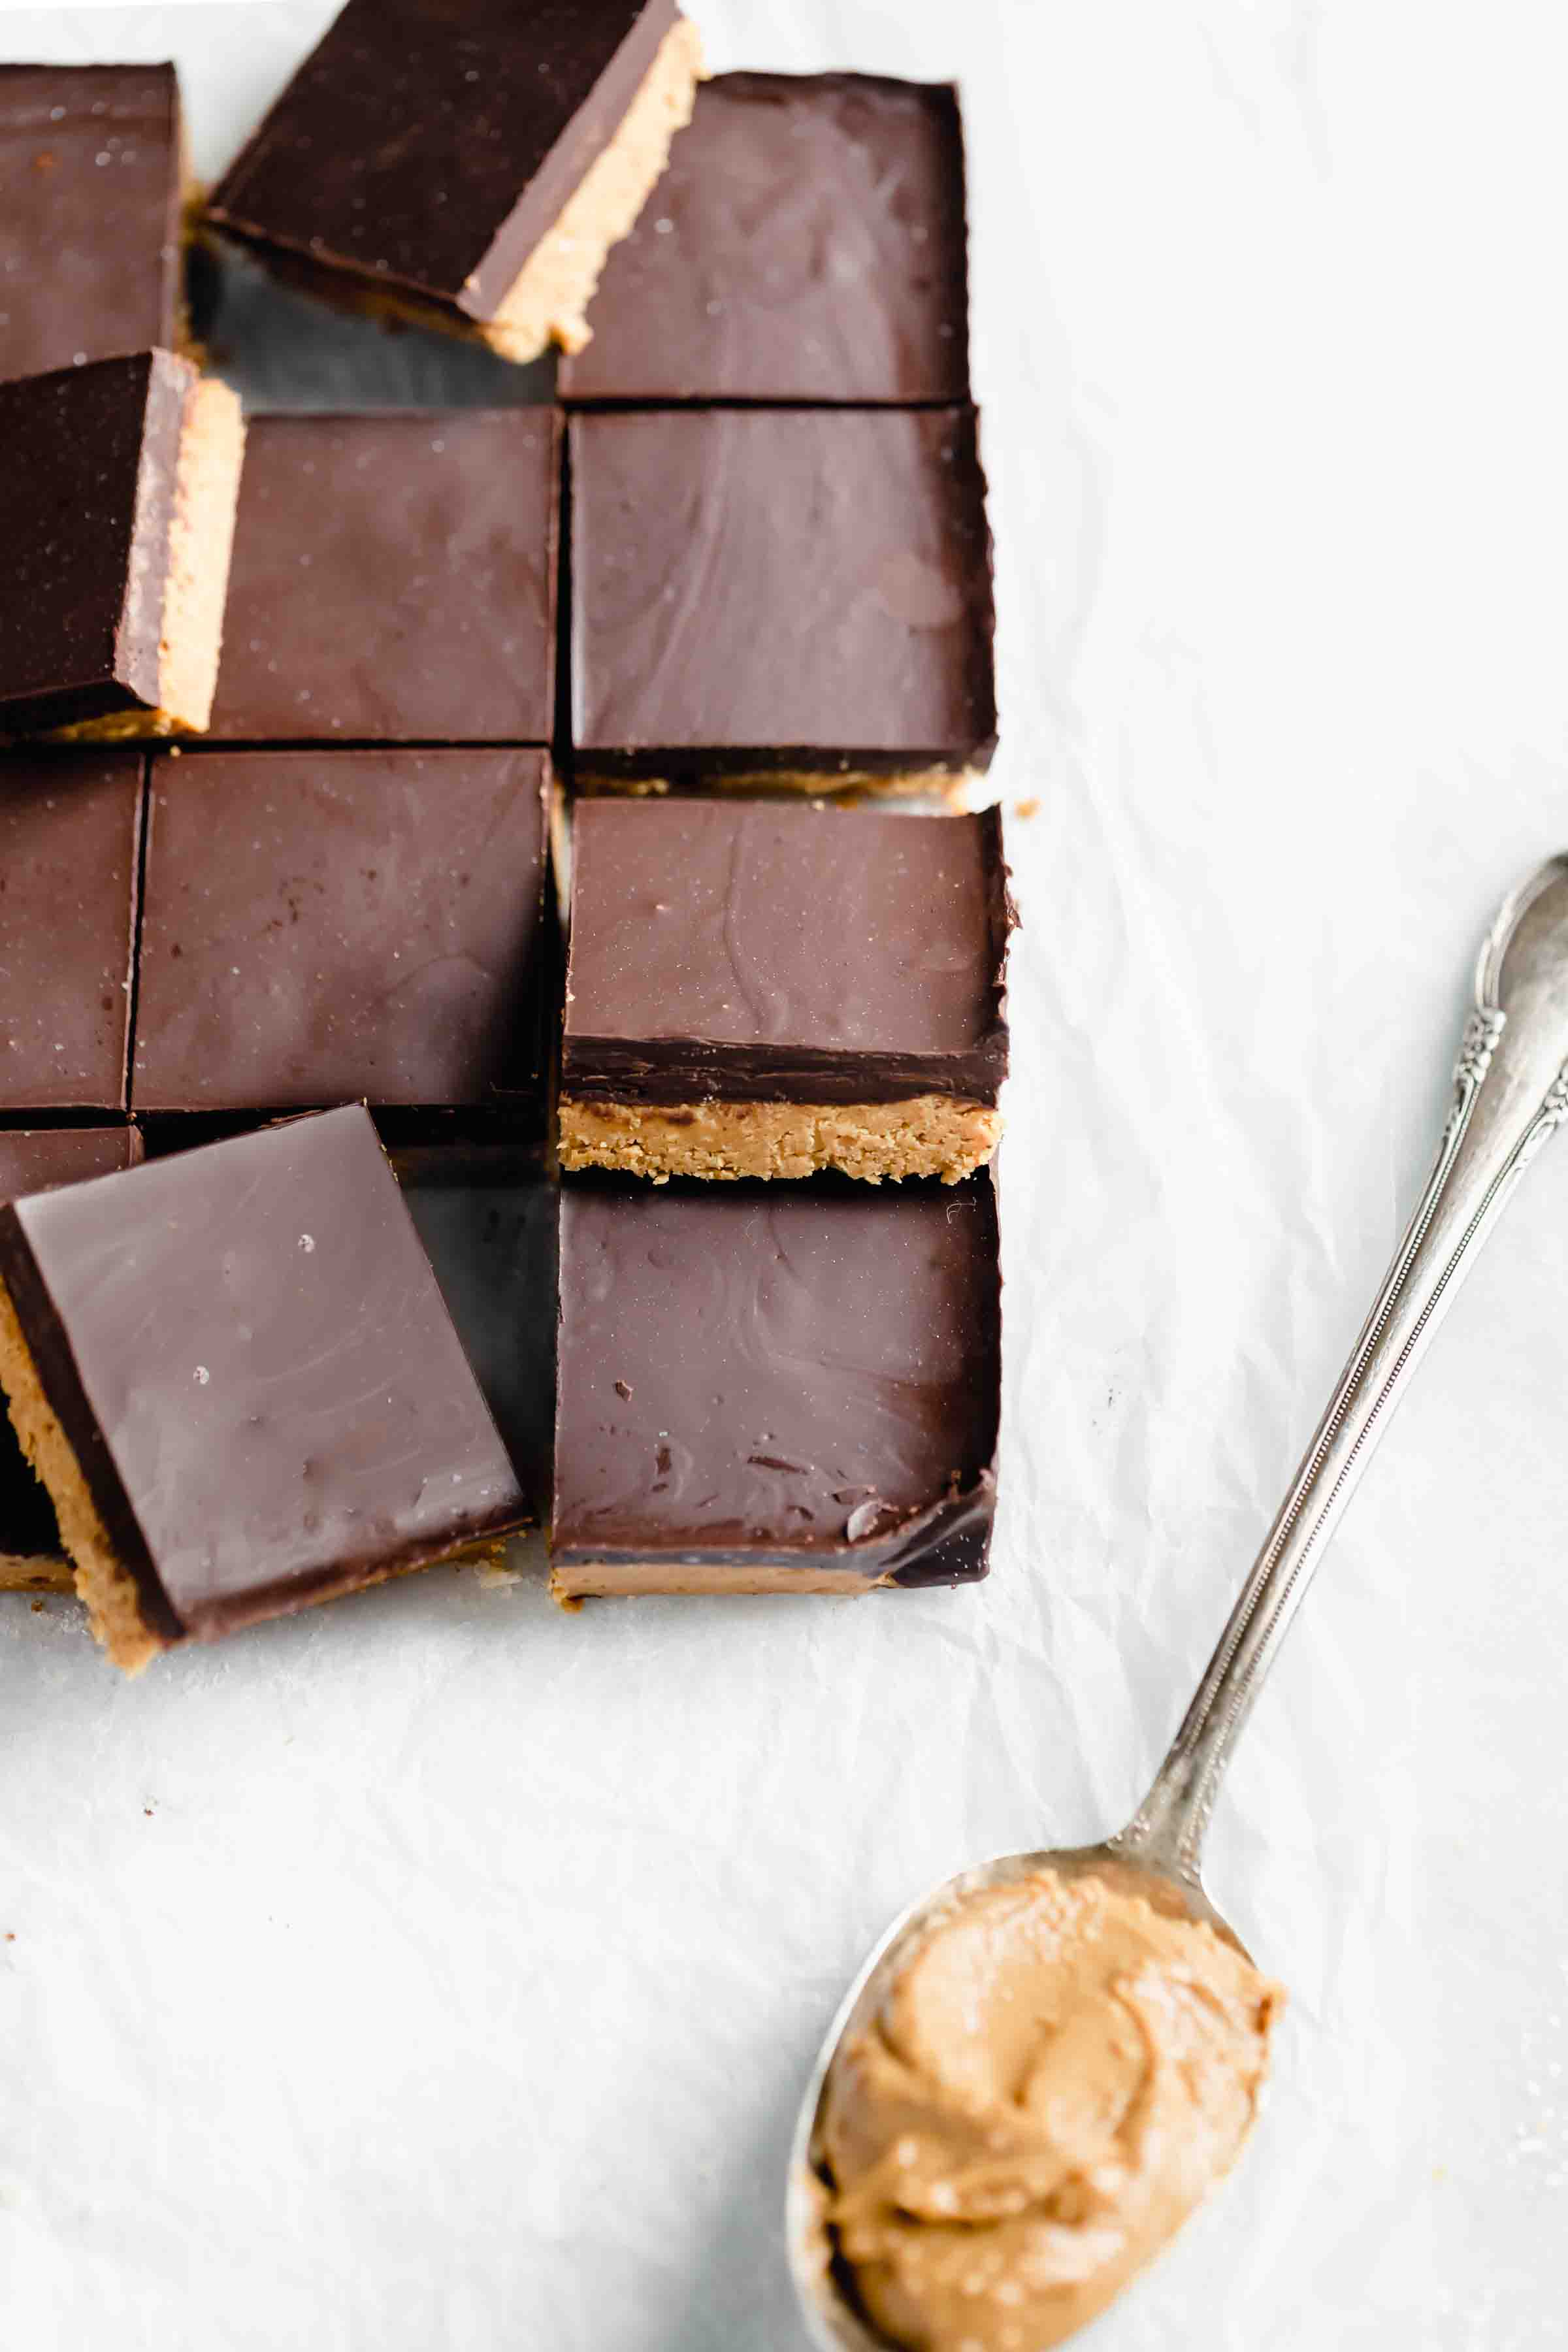 No bake healthy vegan peanut butter chocolate bars made with just 4 ingredients!